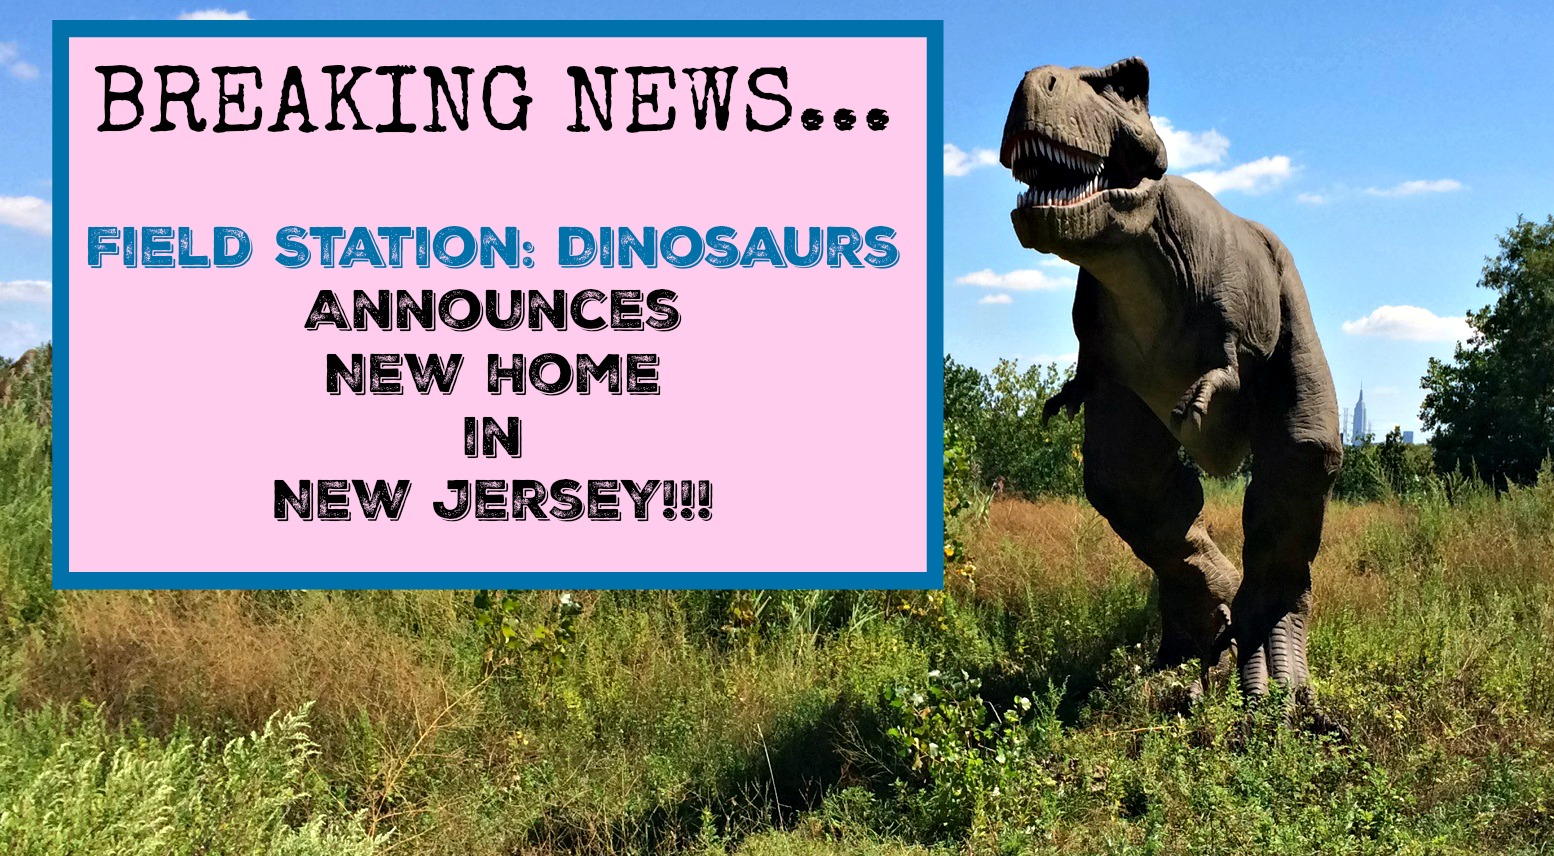 Field Station Dinosaurs New Location Bigger And Better